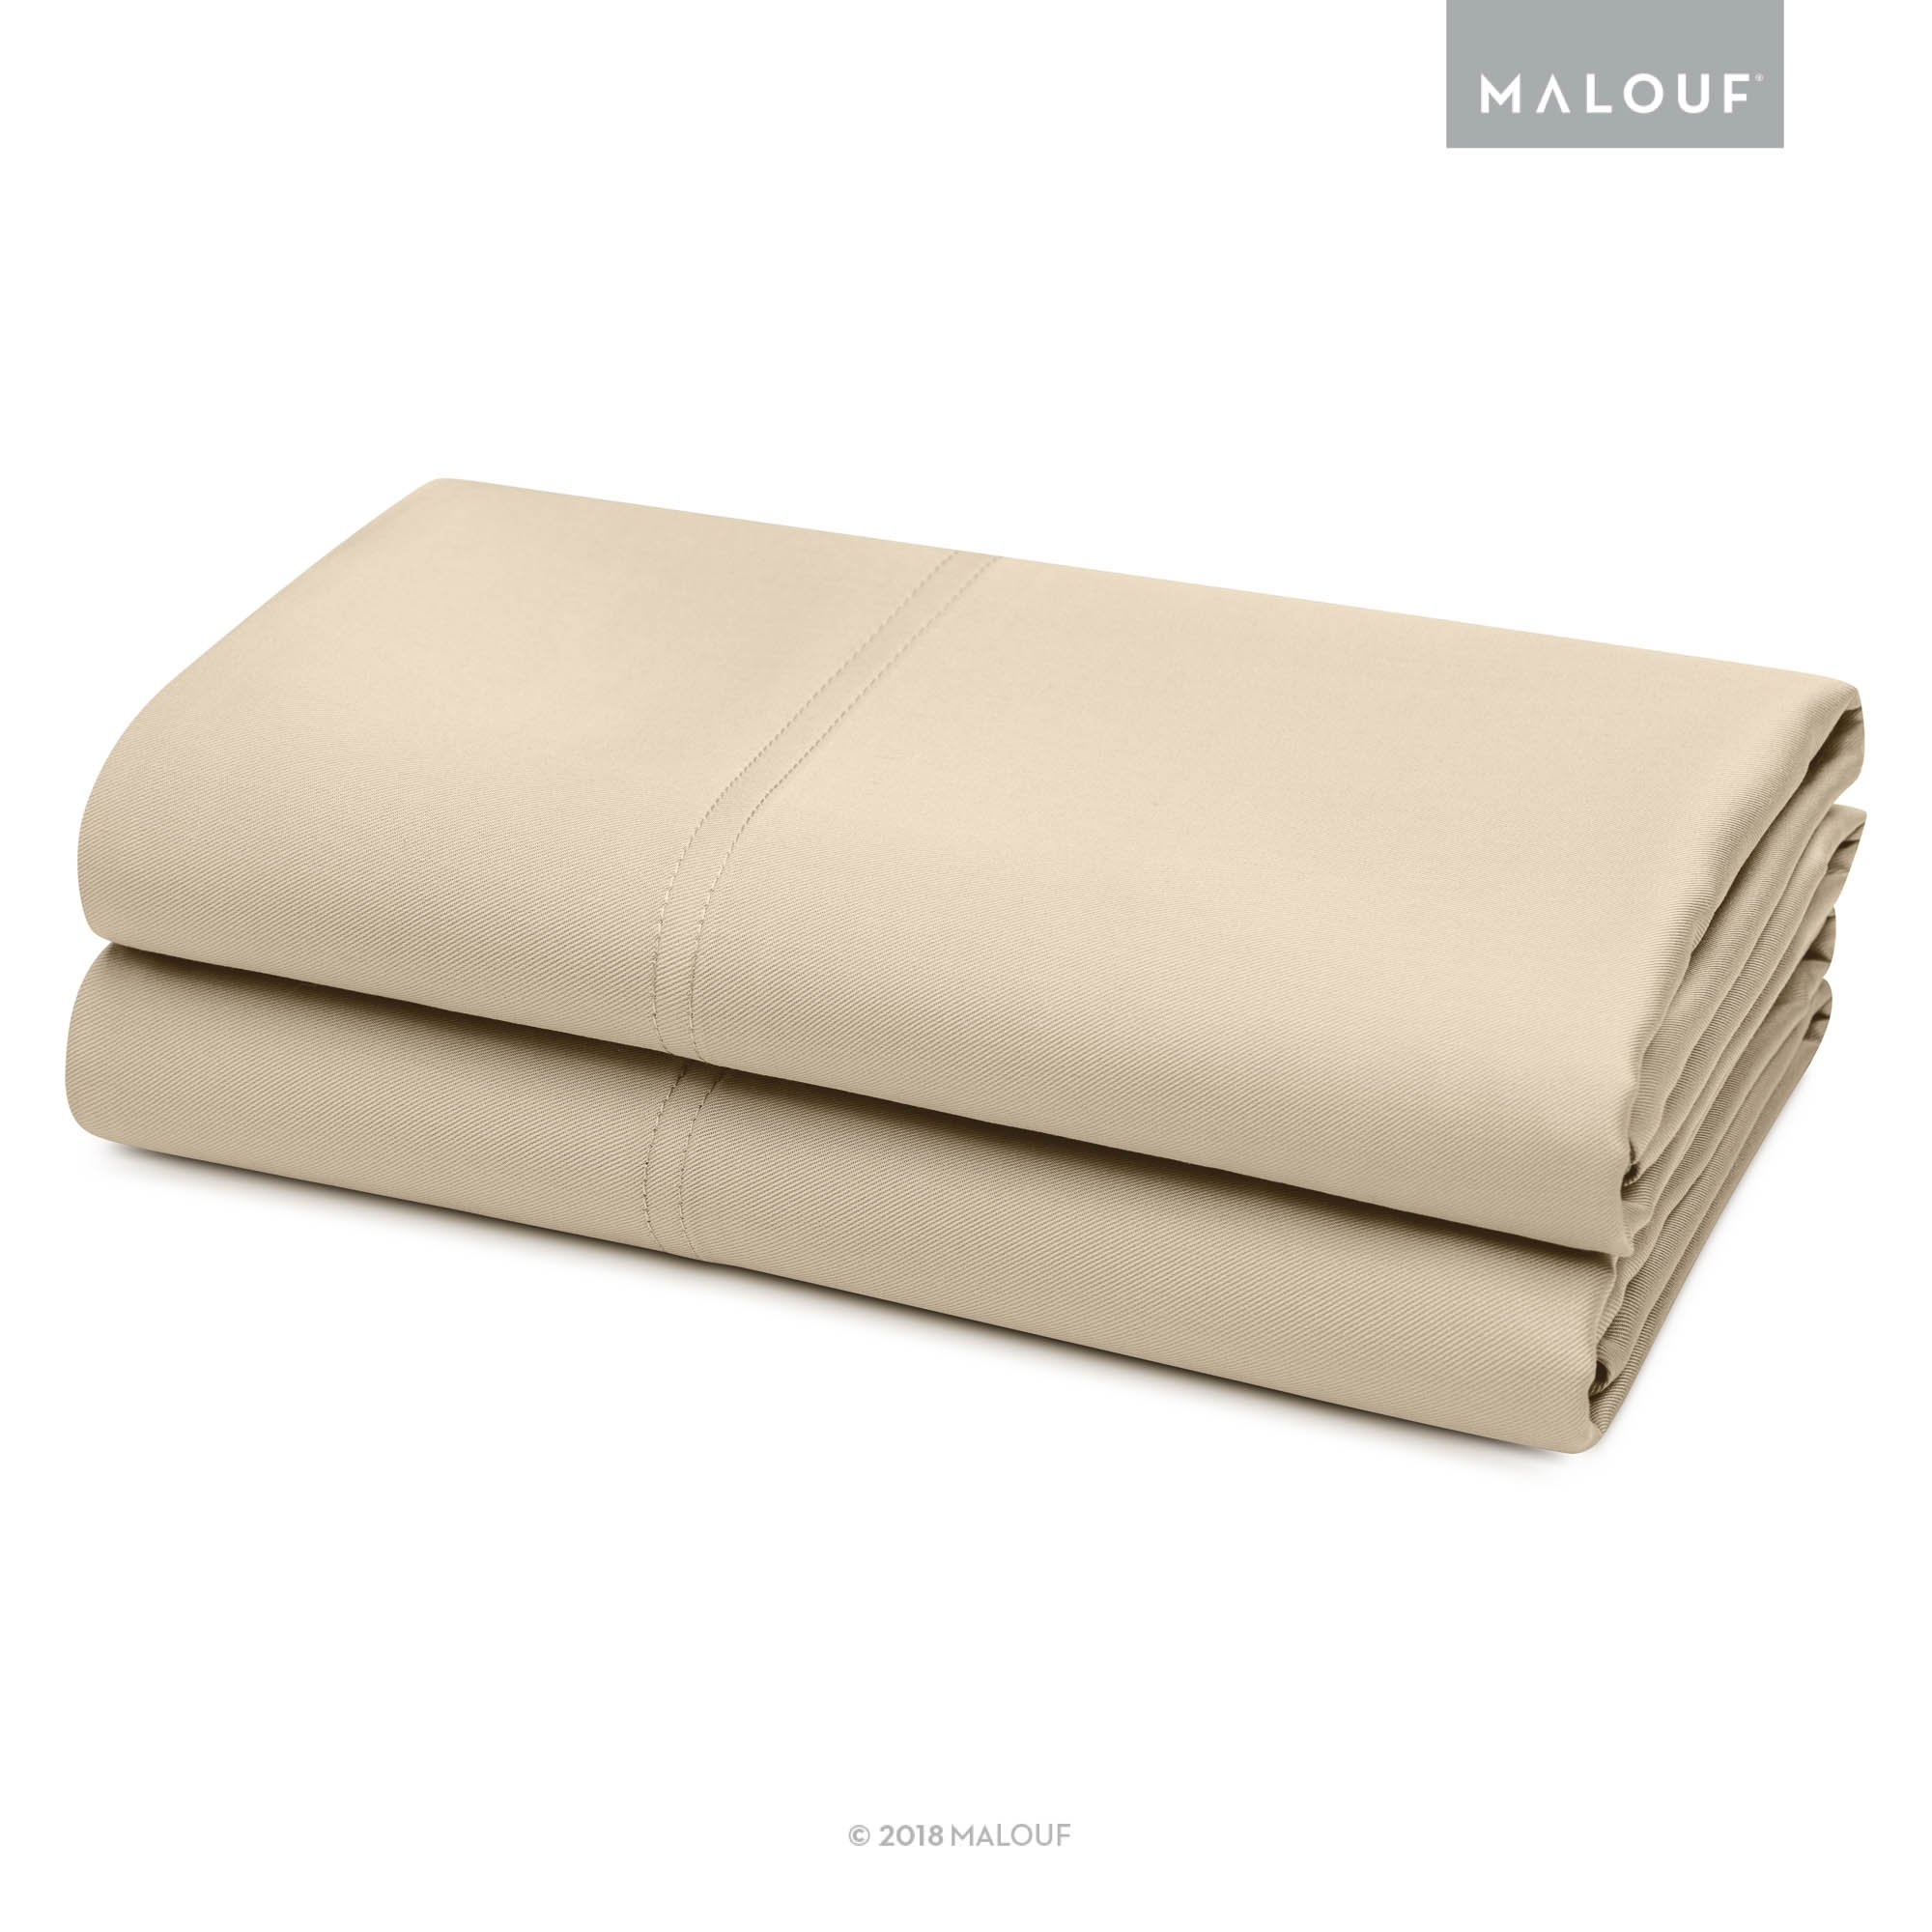 MALOUF 100% Rayon from Bamboo Pillowcase Set - 2-pc Set - Queen - Driftwood